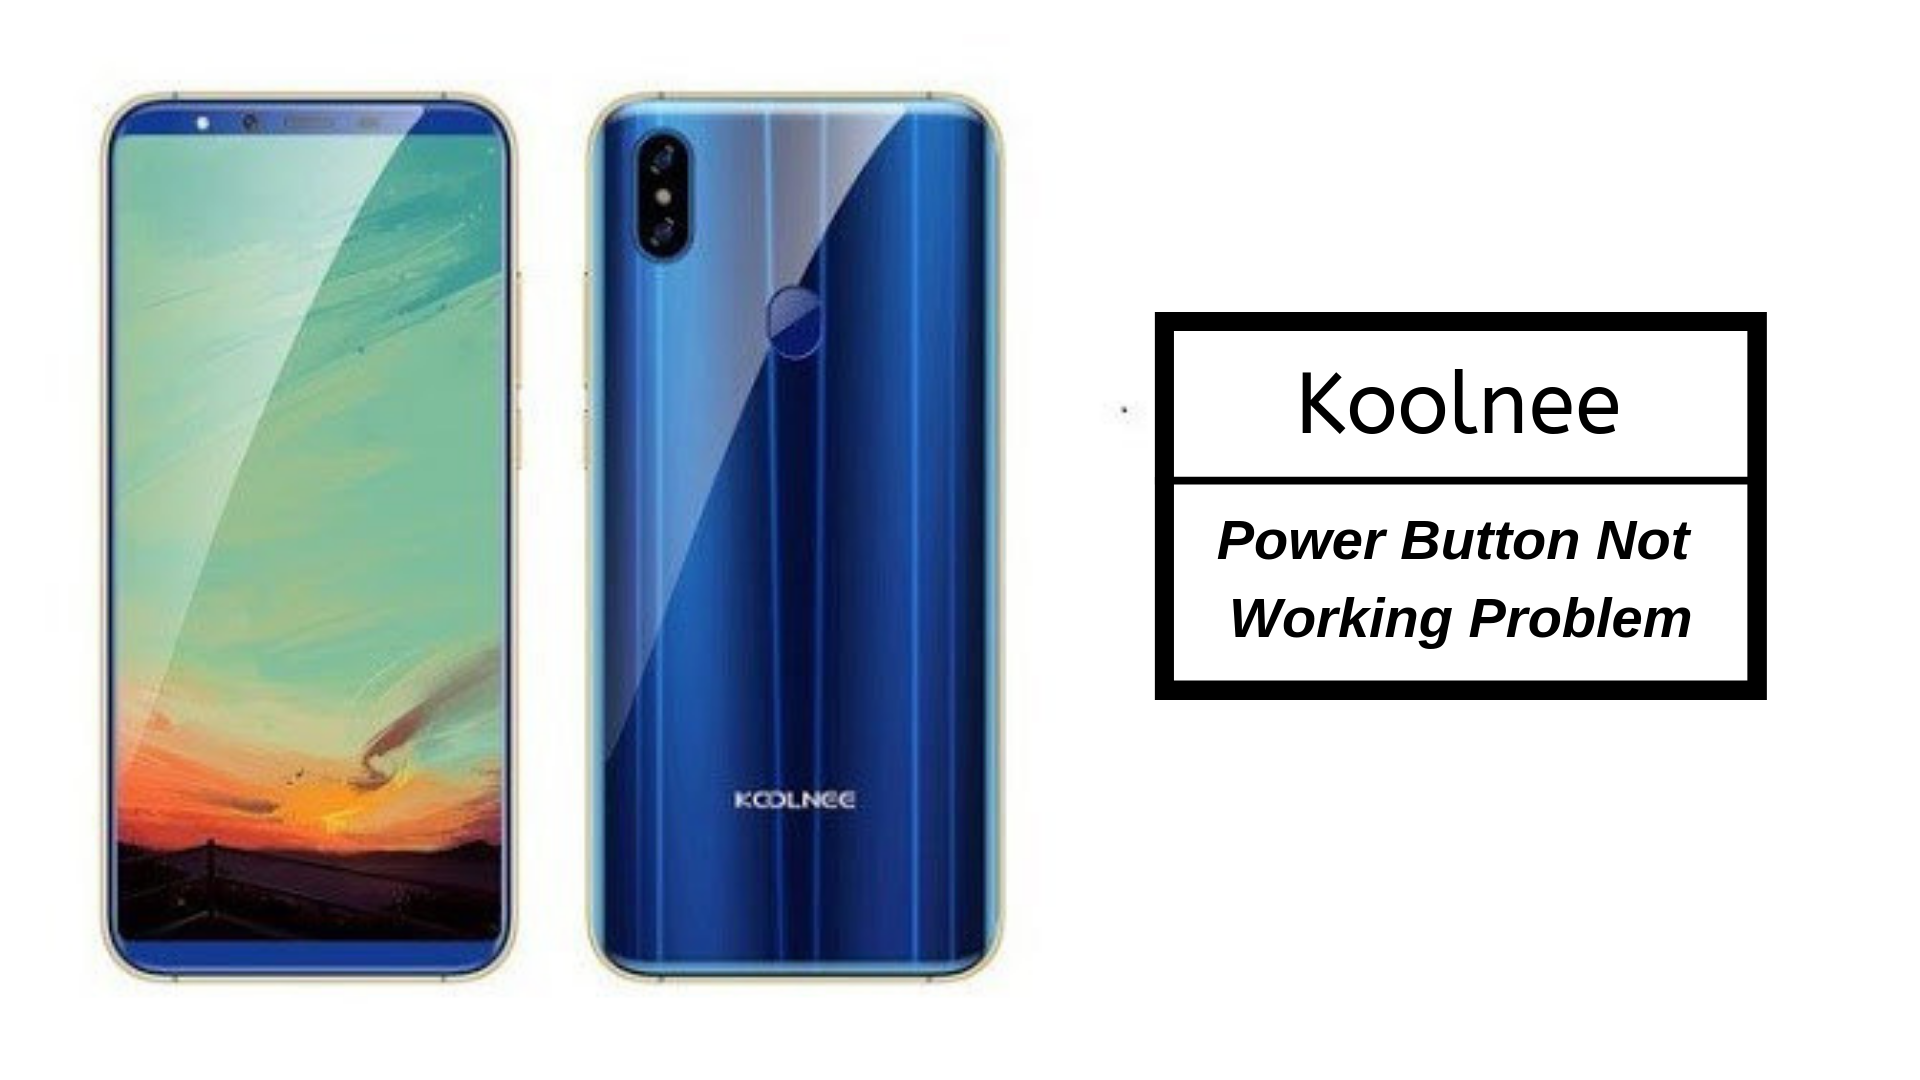 Guide To Fix Koolnee Power Button Not Working Problem